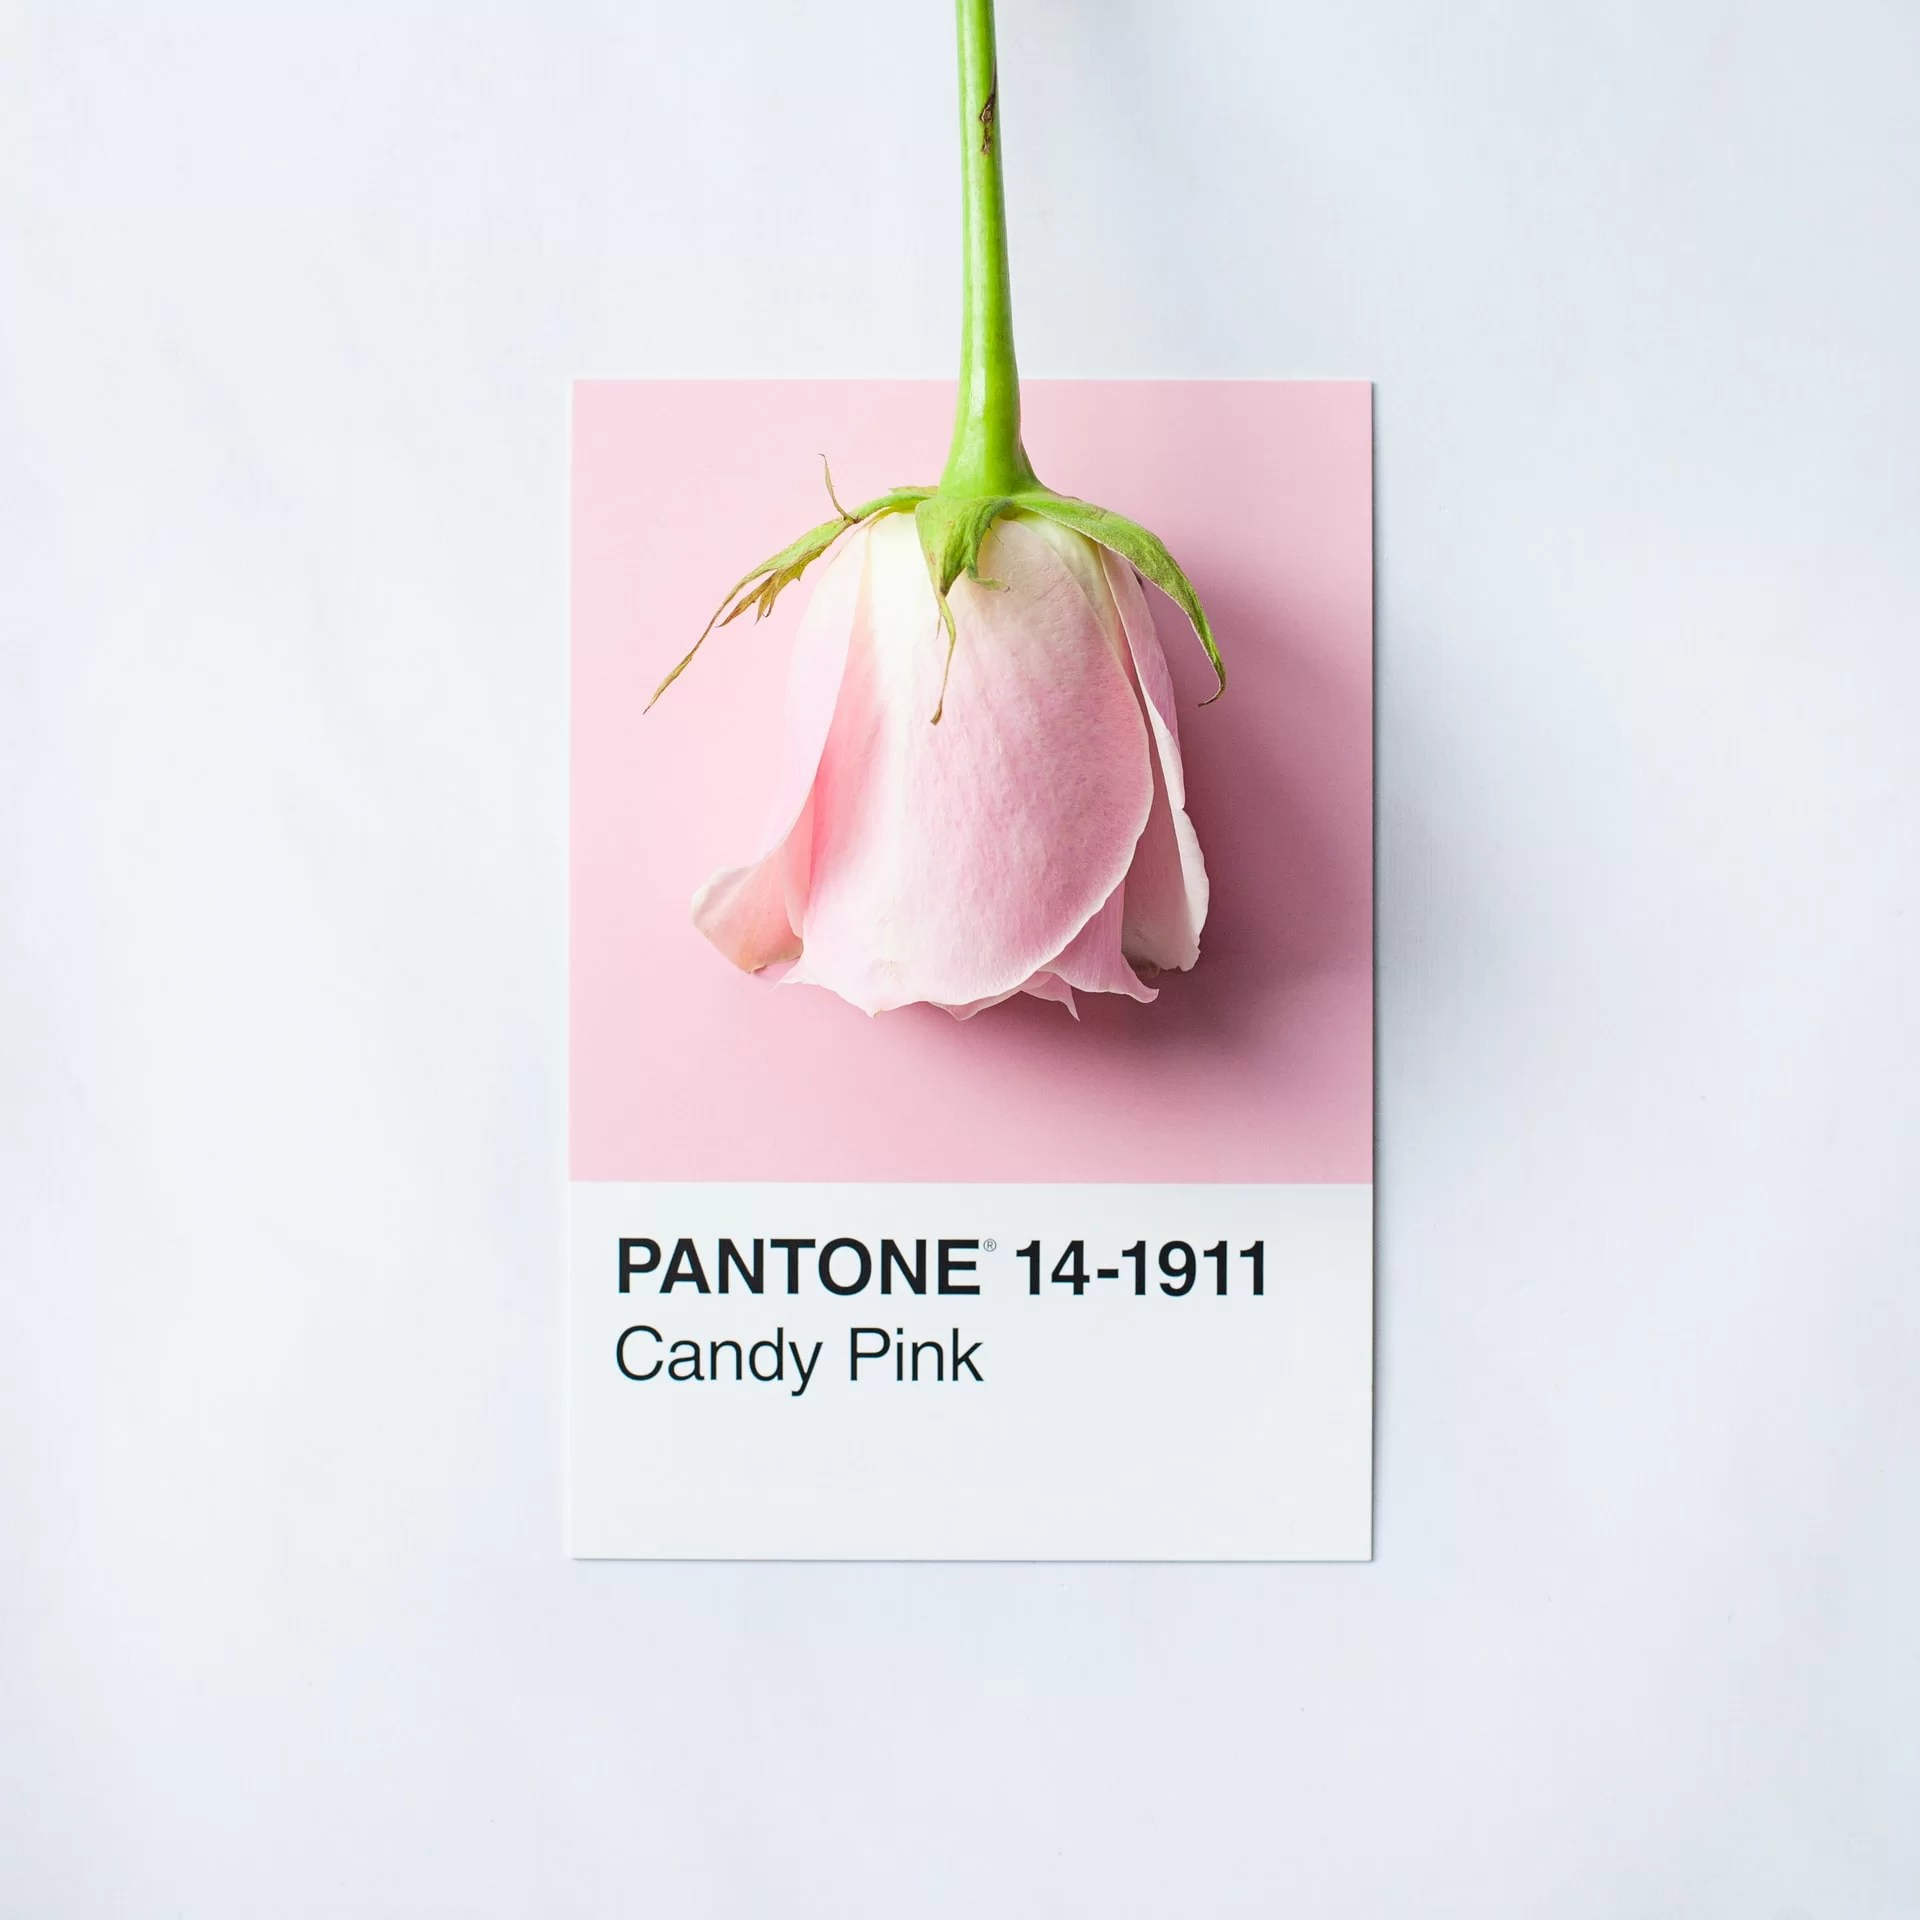 Find the perfect Pantone color for your next project